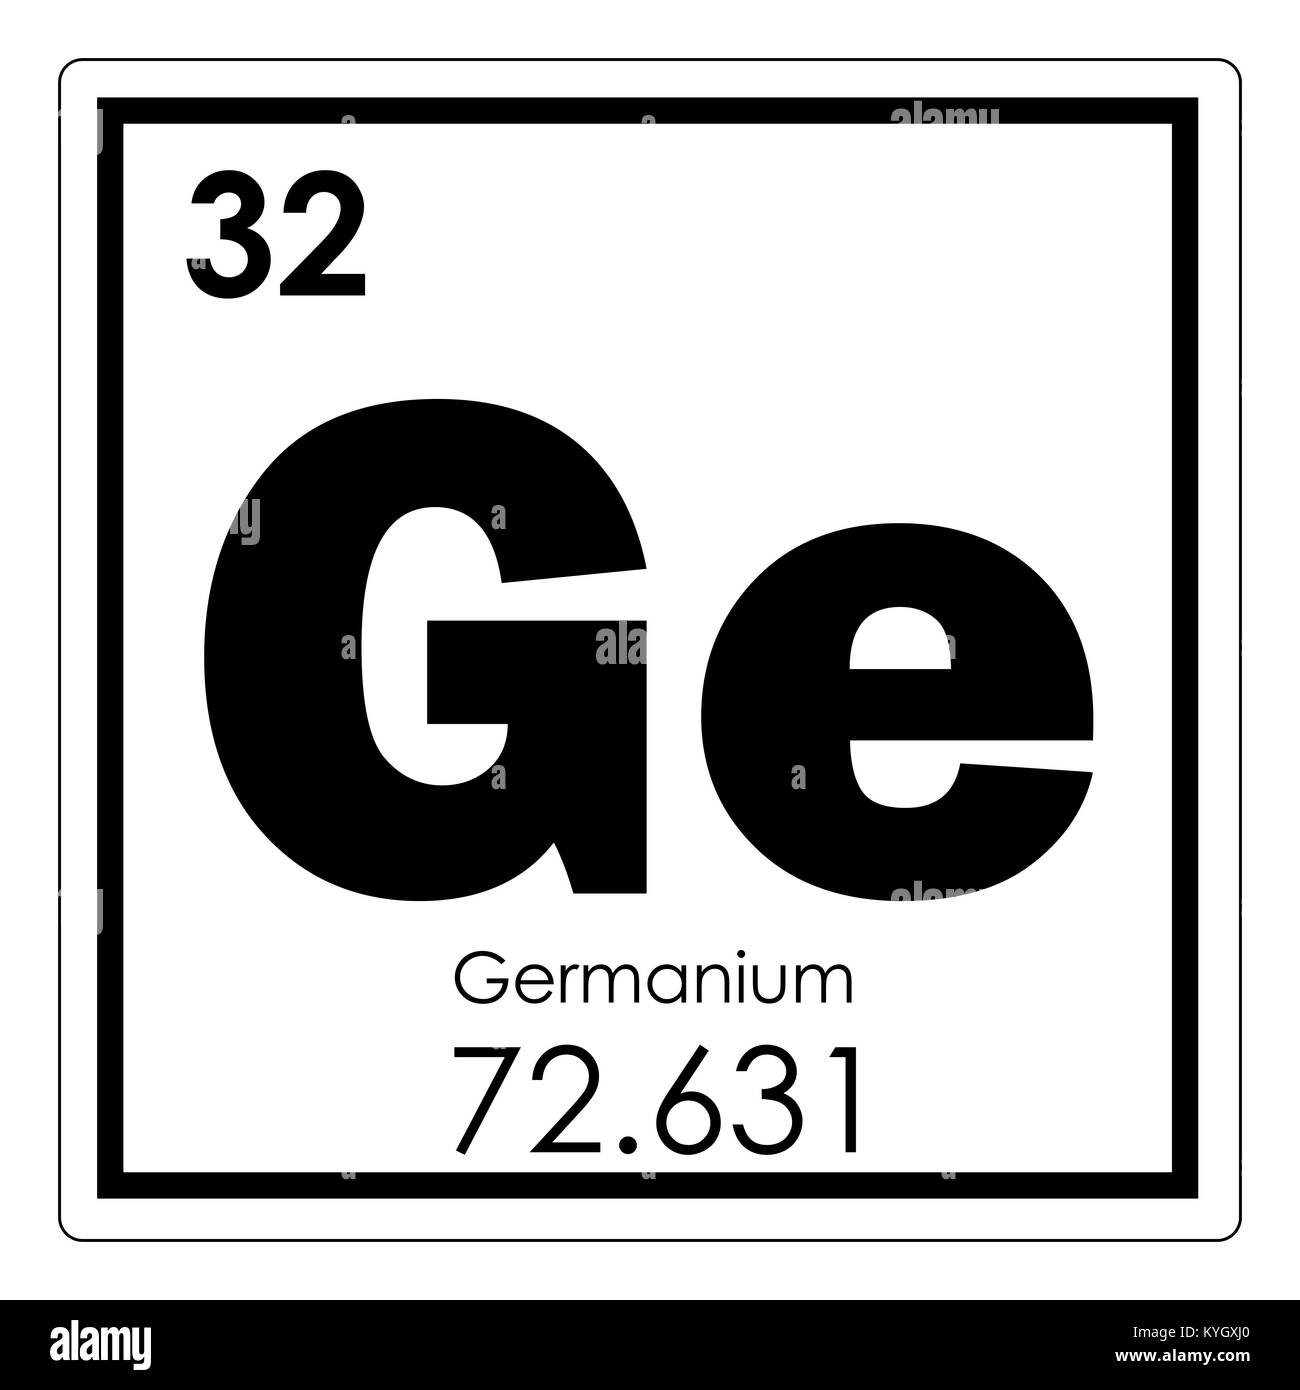 Germanium Chemical Element Periodic Table Science Symbol Stock Photo